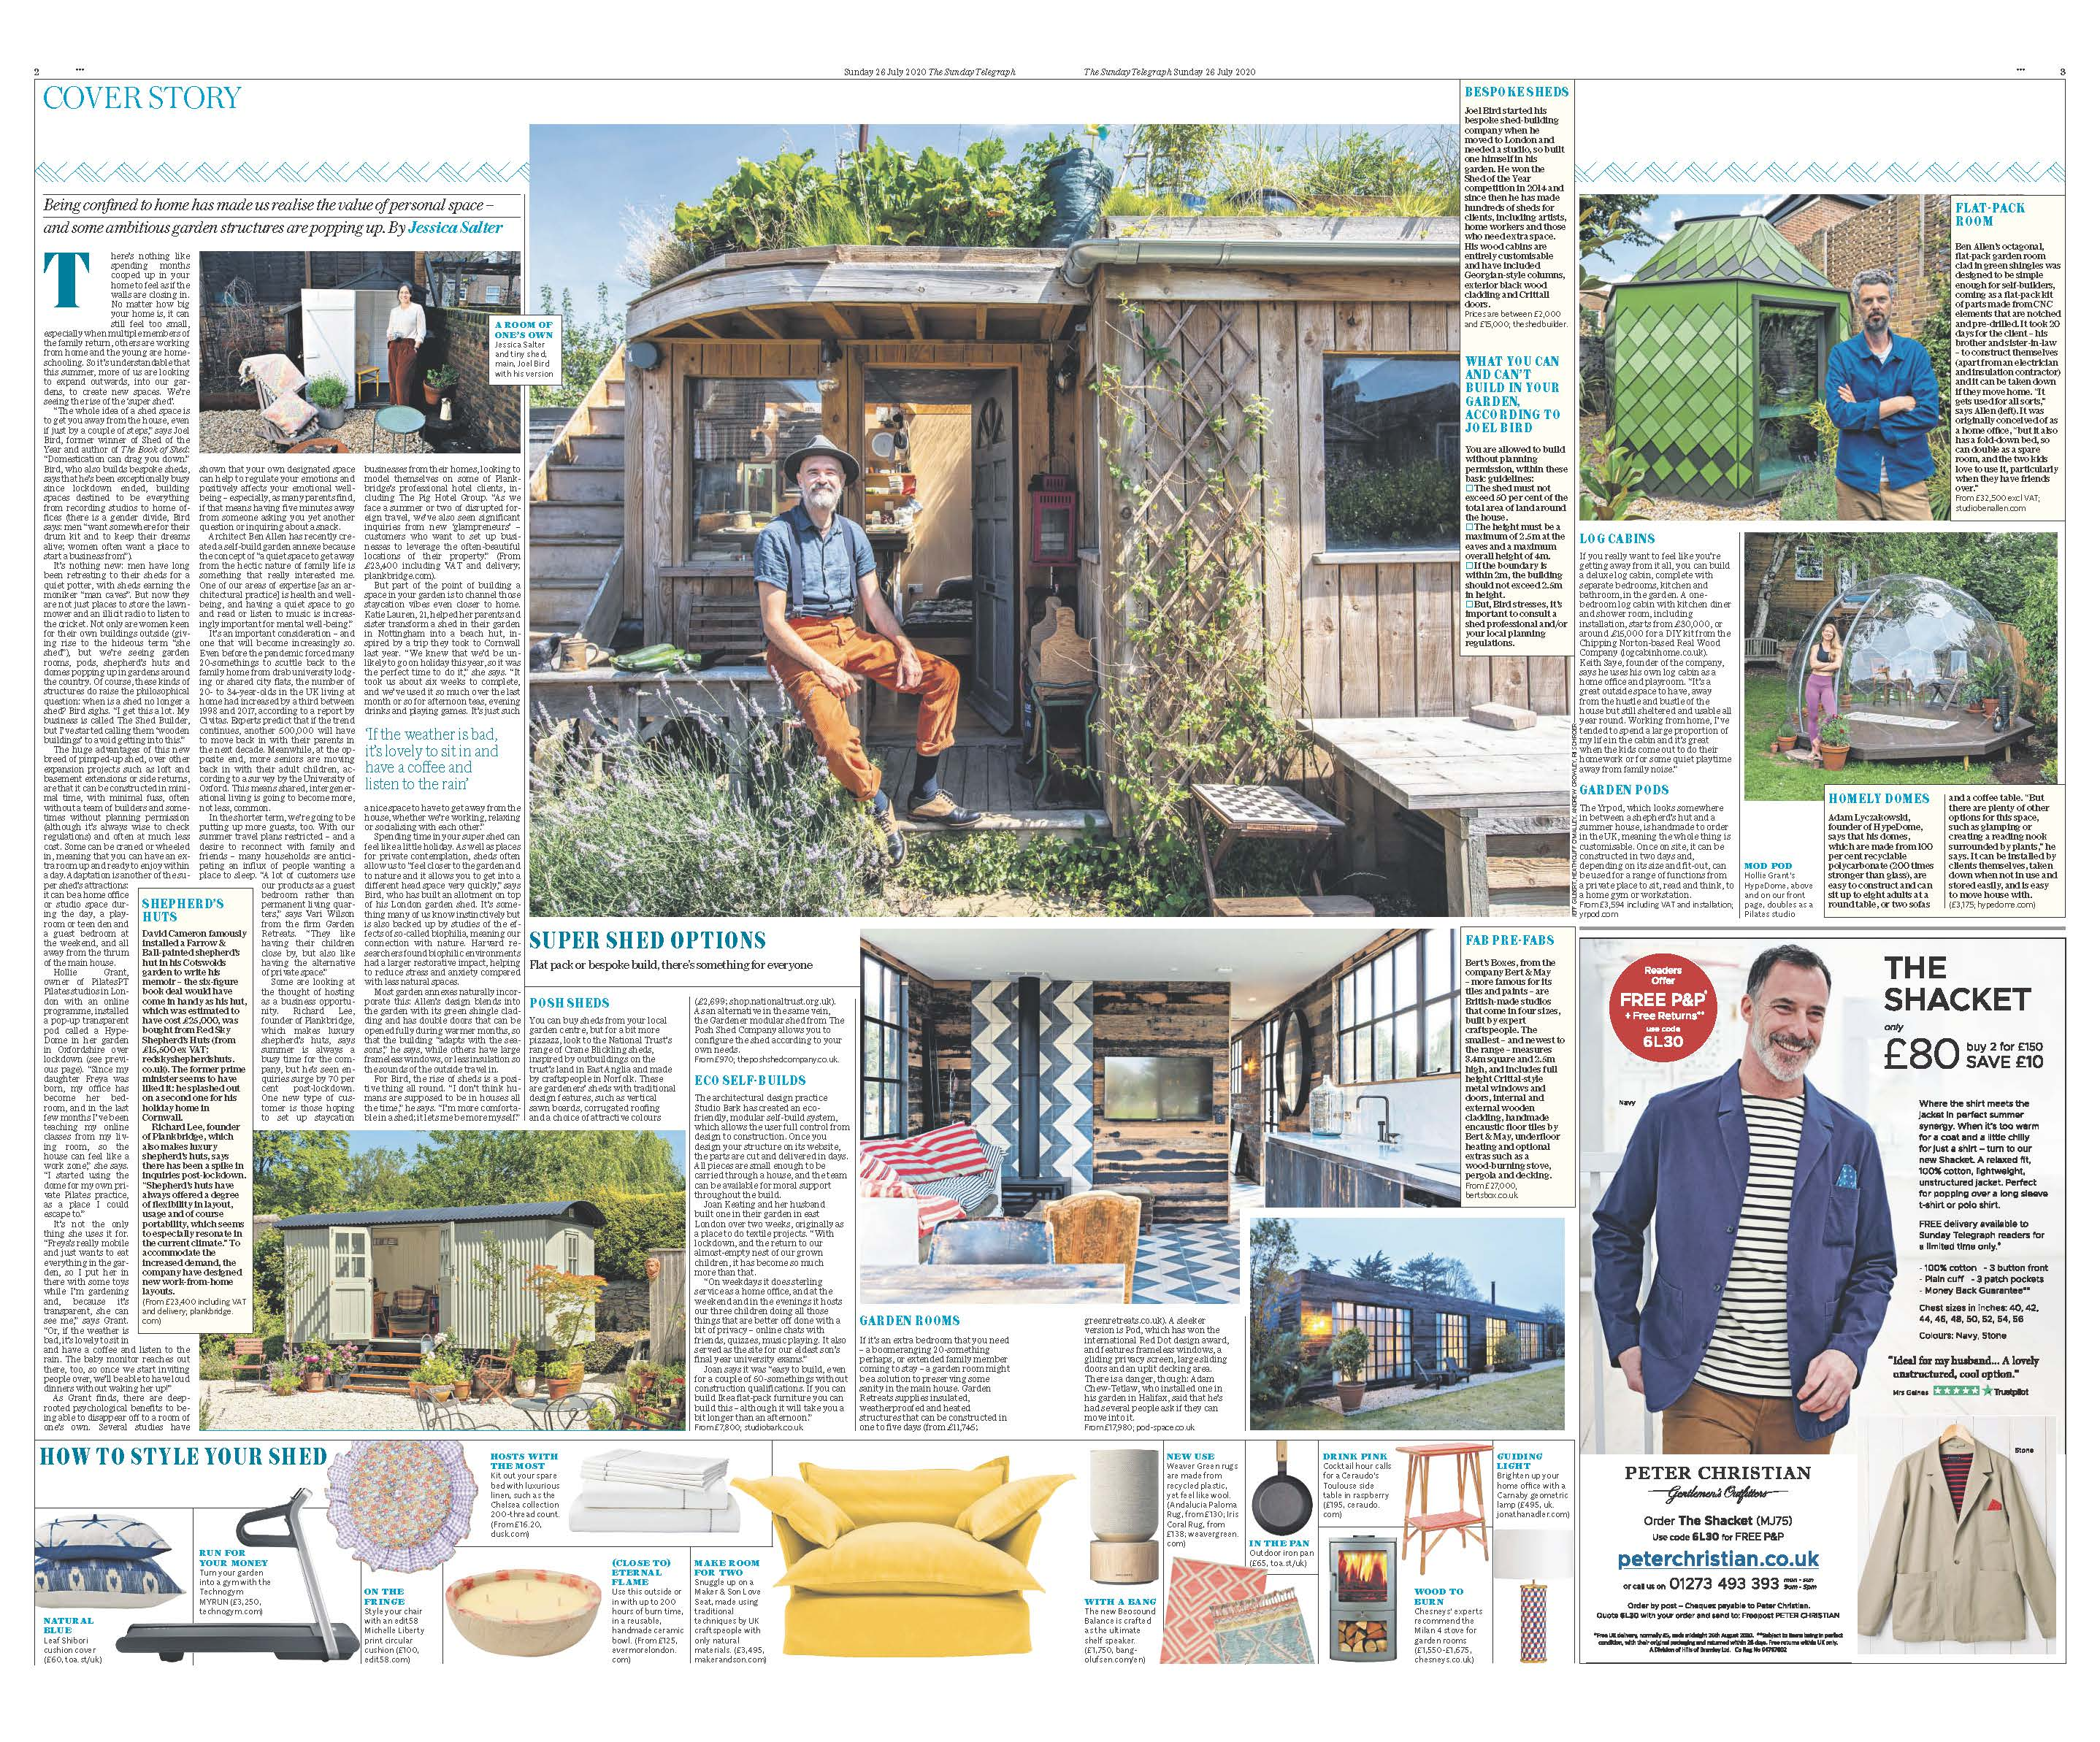 Sunday Telegraph print article of the cover story on the rise of the super shed